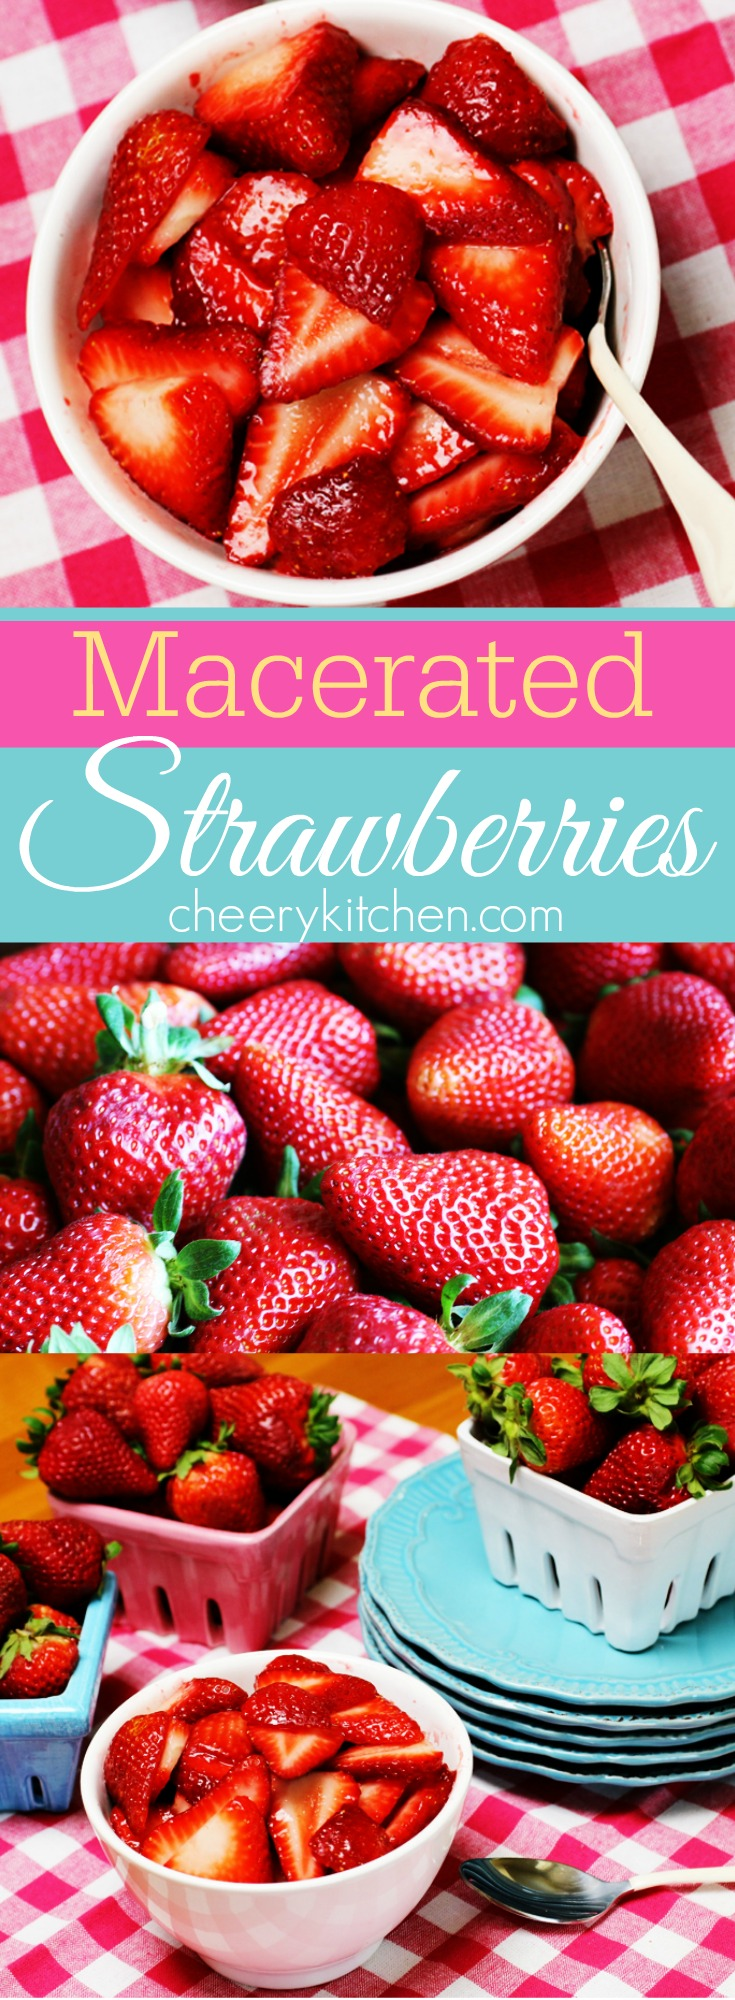 Serve or freeze macerate strawberries, all you have to do is sprinkle sugar on them, which draws out their juices so they become soft and sweet and deliciously saucy.